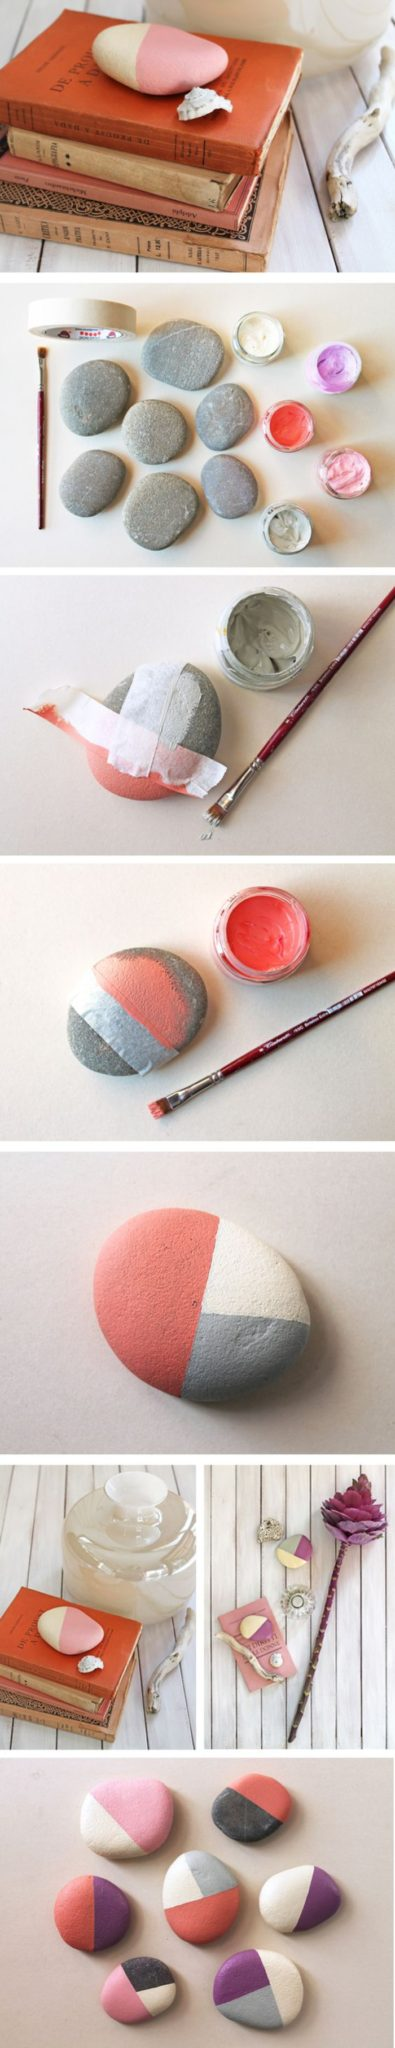 pebble painting ideas38